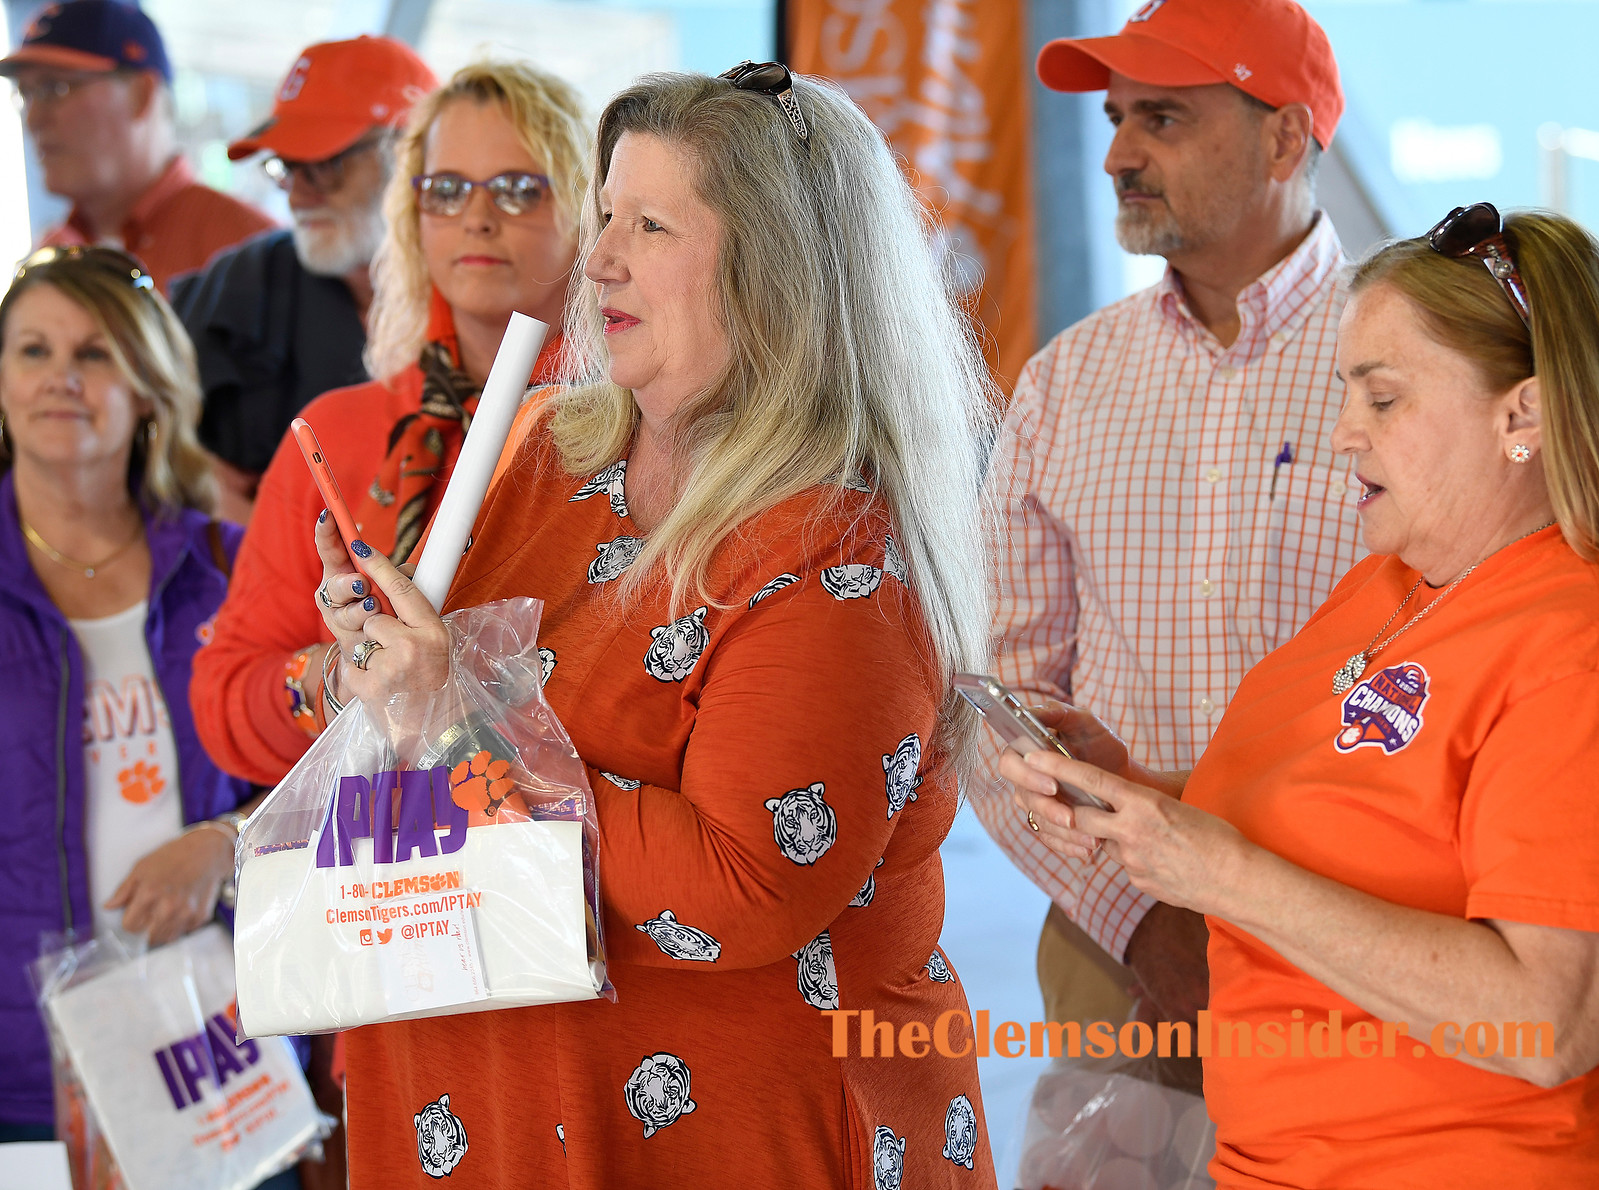 The Greenville County Clemson Club held its annual Prowl and Growl Monday, April 15, 2019 at Fluor Field in downtown Greenville. Bart Boatwright/The Clemson Insider